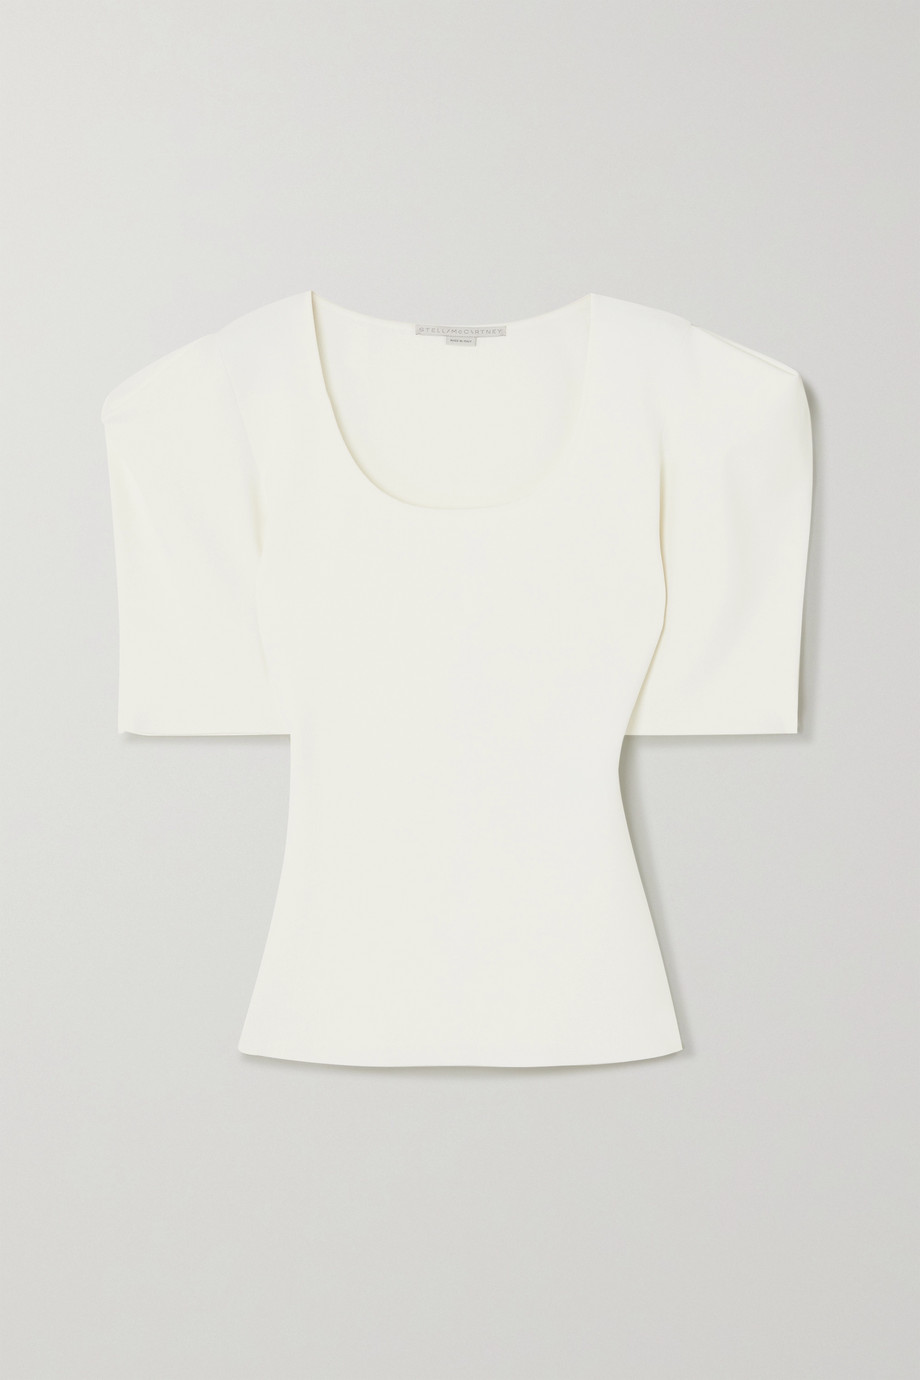 Stella McCartney Stretch-knit top